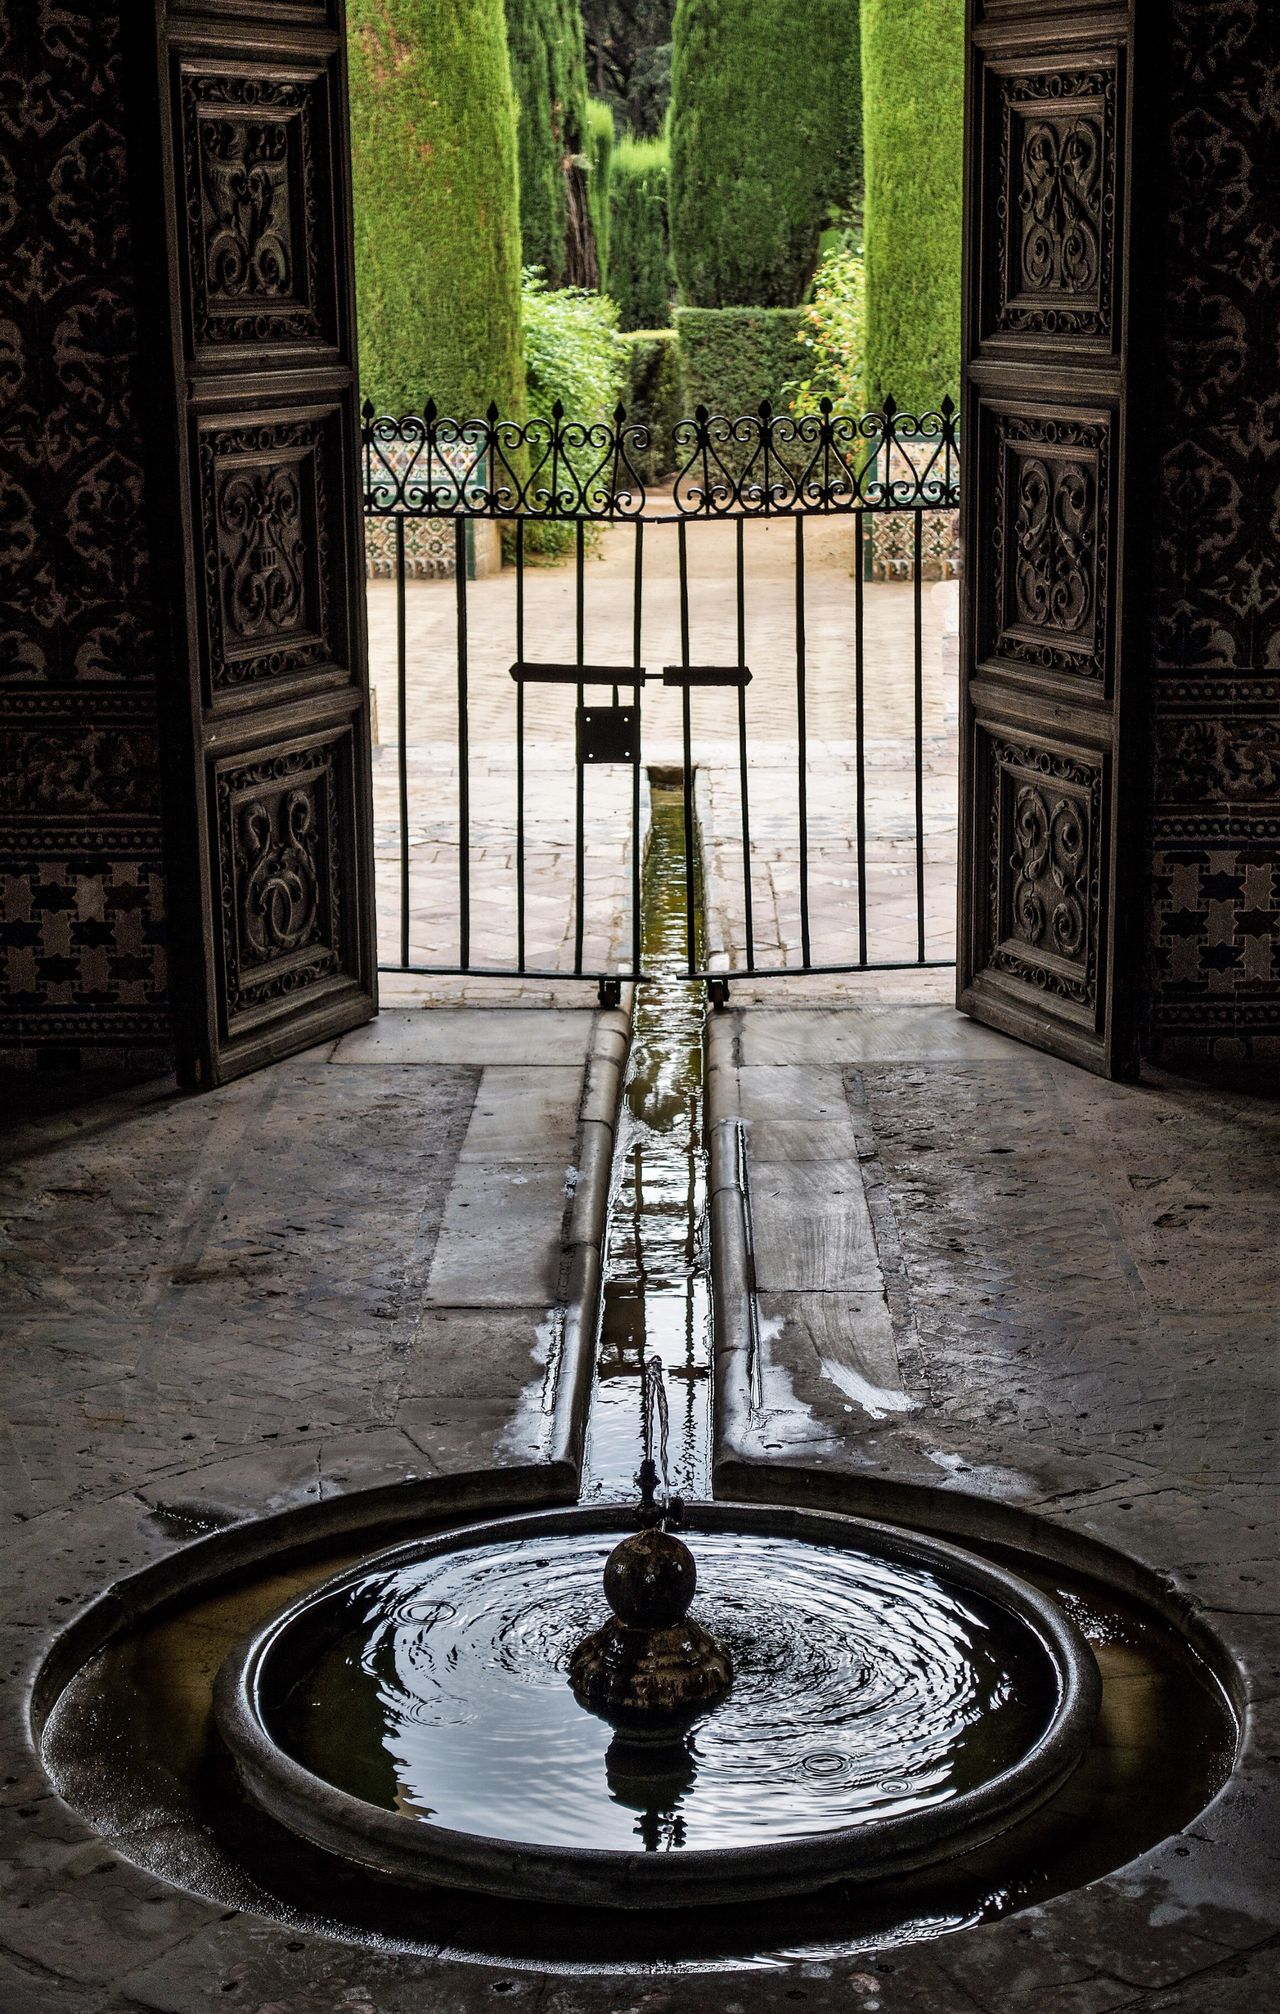 Water Fountain No People Architecture Tranquility Tranquil Alcazar De Seville Alcazar History Travel SPAIN España🇪🇸 EyeEmNewHere Sevilla Seville Moorish Architecture Moorish Travel Destinations Basin Contemplative Meditative Meditation Place Meditation Peaceful Garden